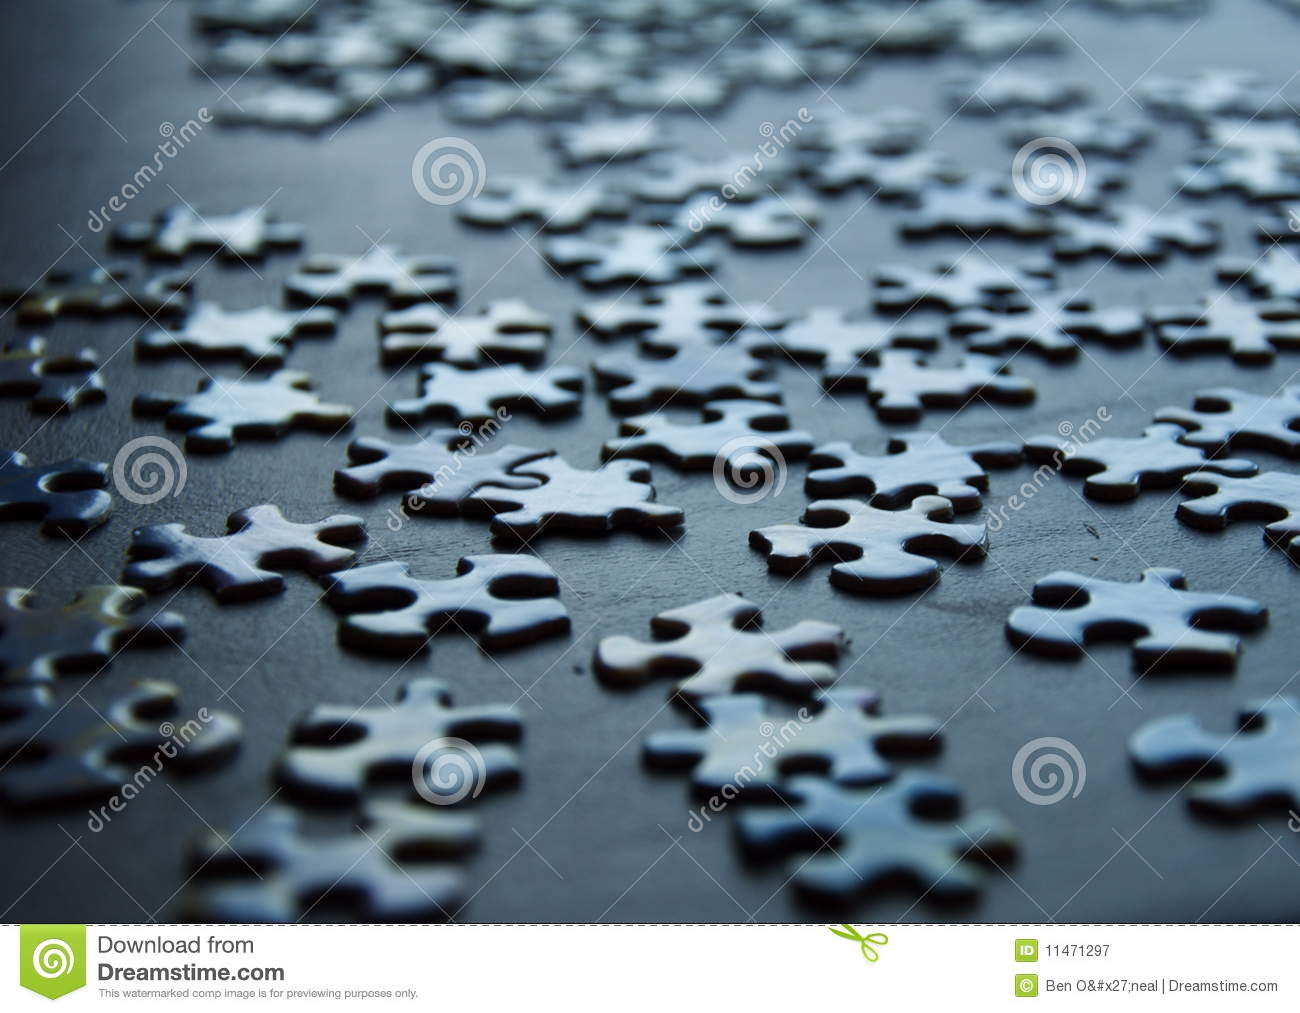 3d Metallic Wallpaper Puzzle Pieces Background Royalty Free Stock Photography